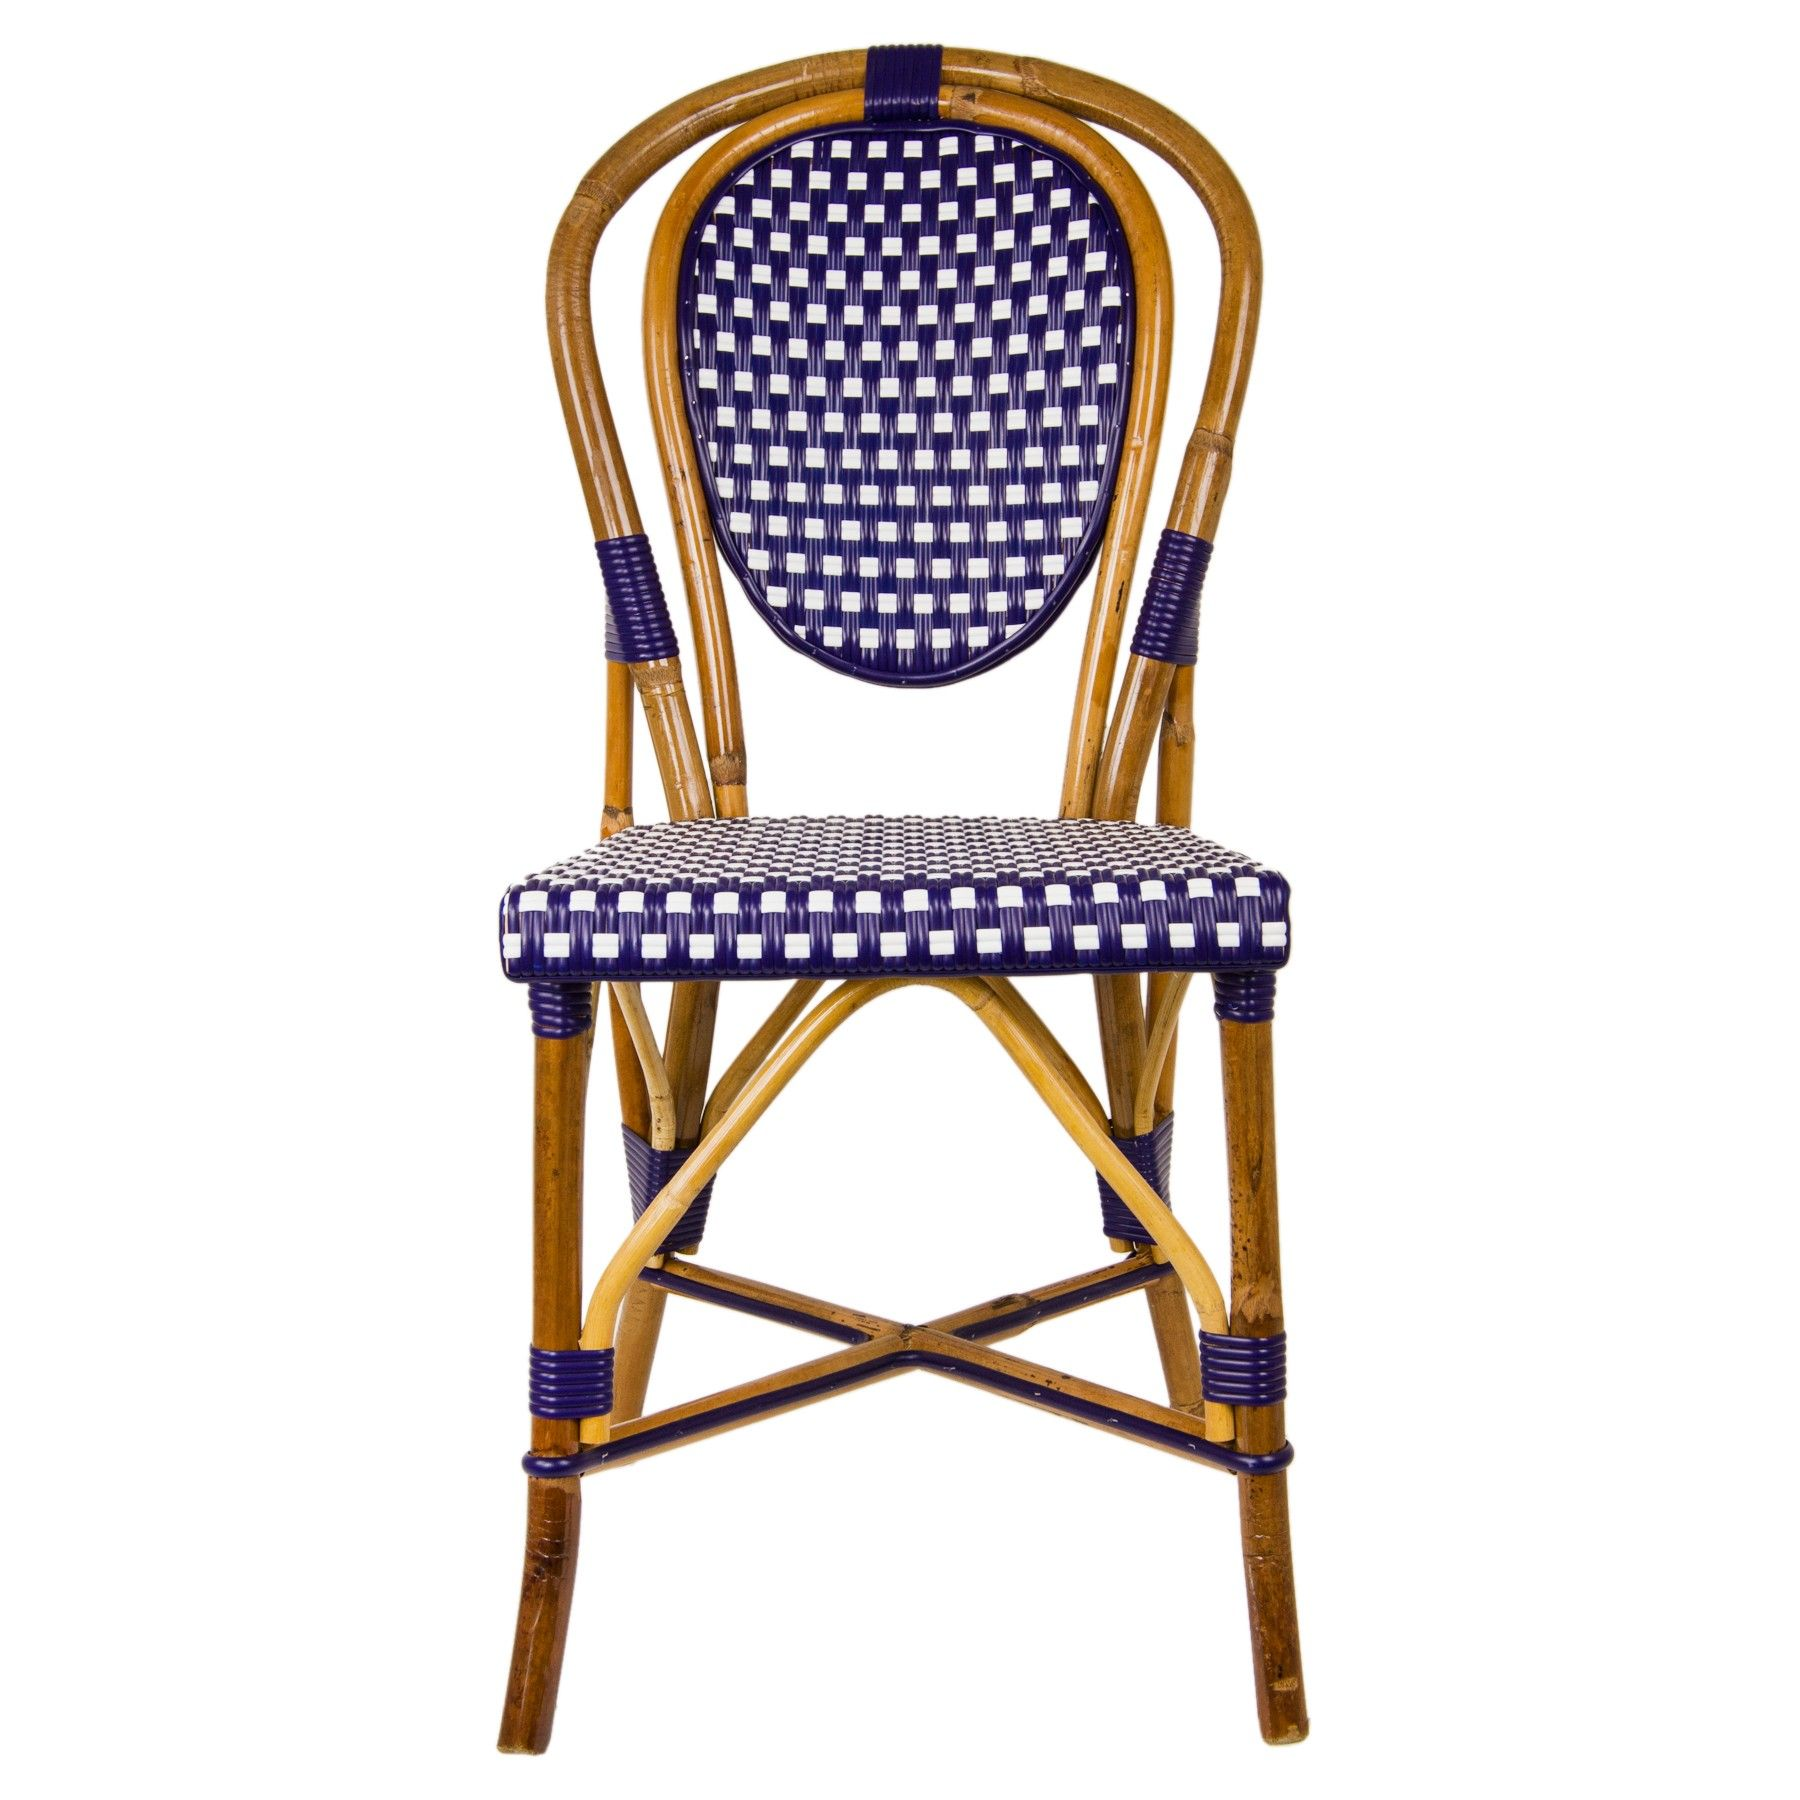 blue bistro chairs shabby chic chair covers navy price 232 95 november 2014 our most popular these armless rattan framed dining are part of the iconic french